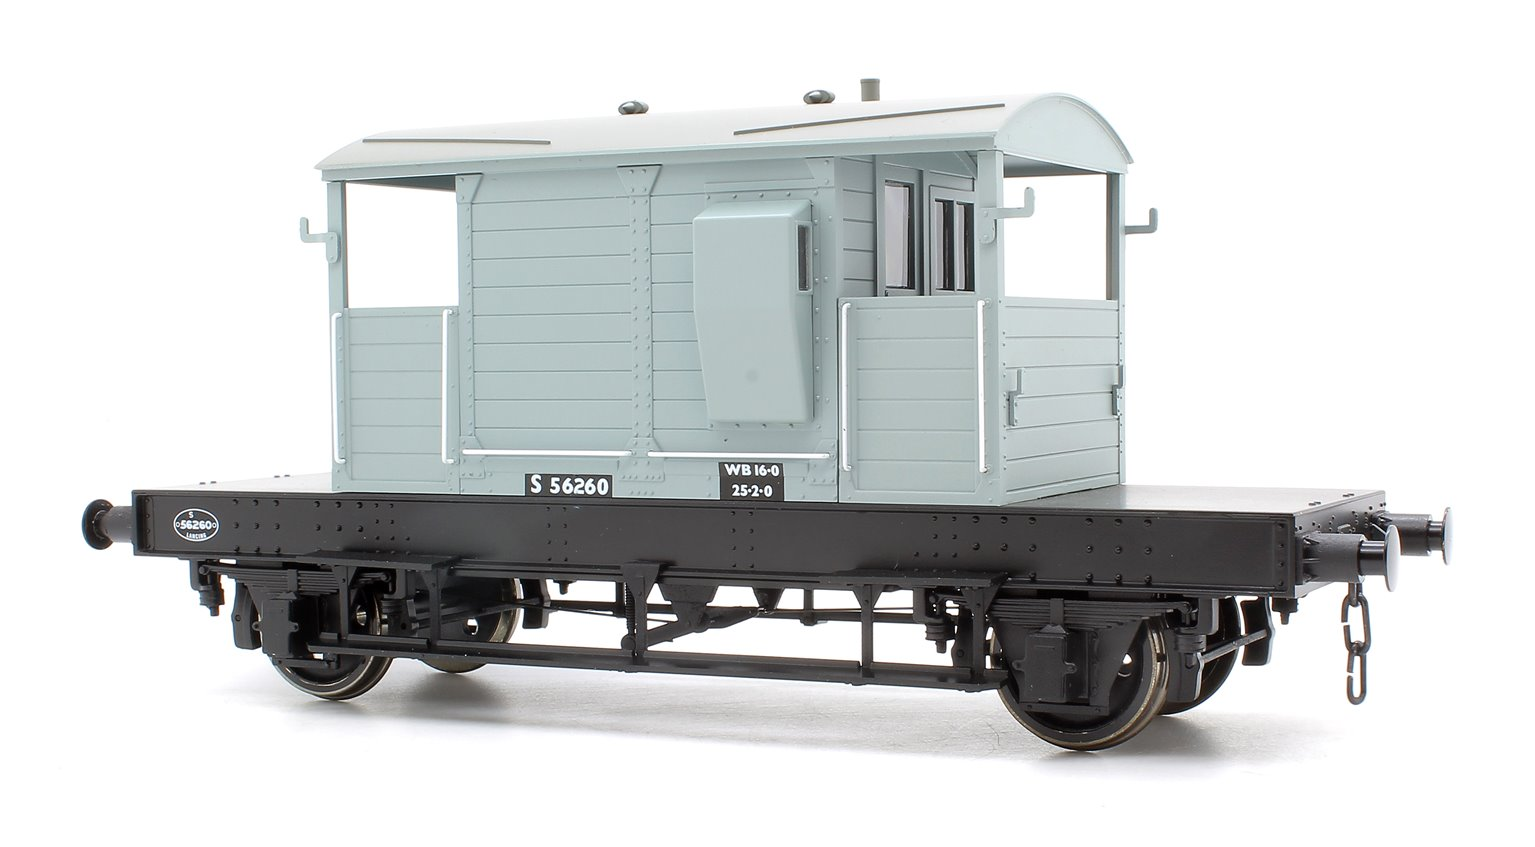 Pill Box Brake Van S56260 B.R Grey (Even Plank)